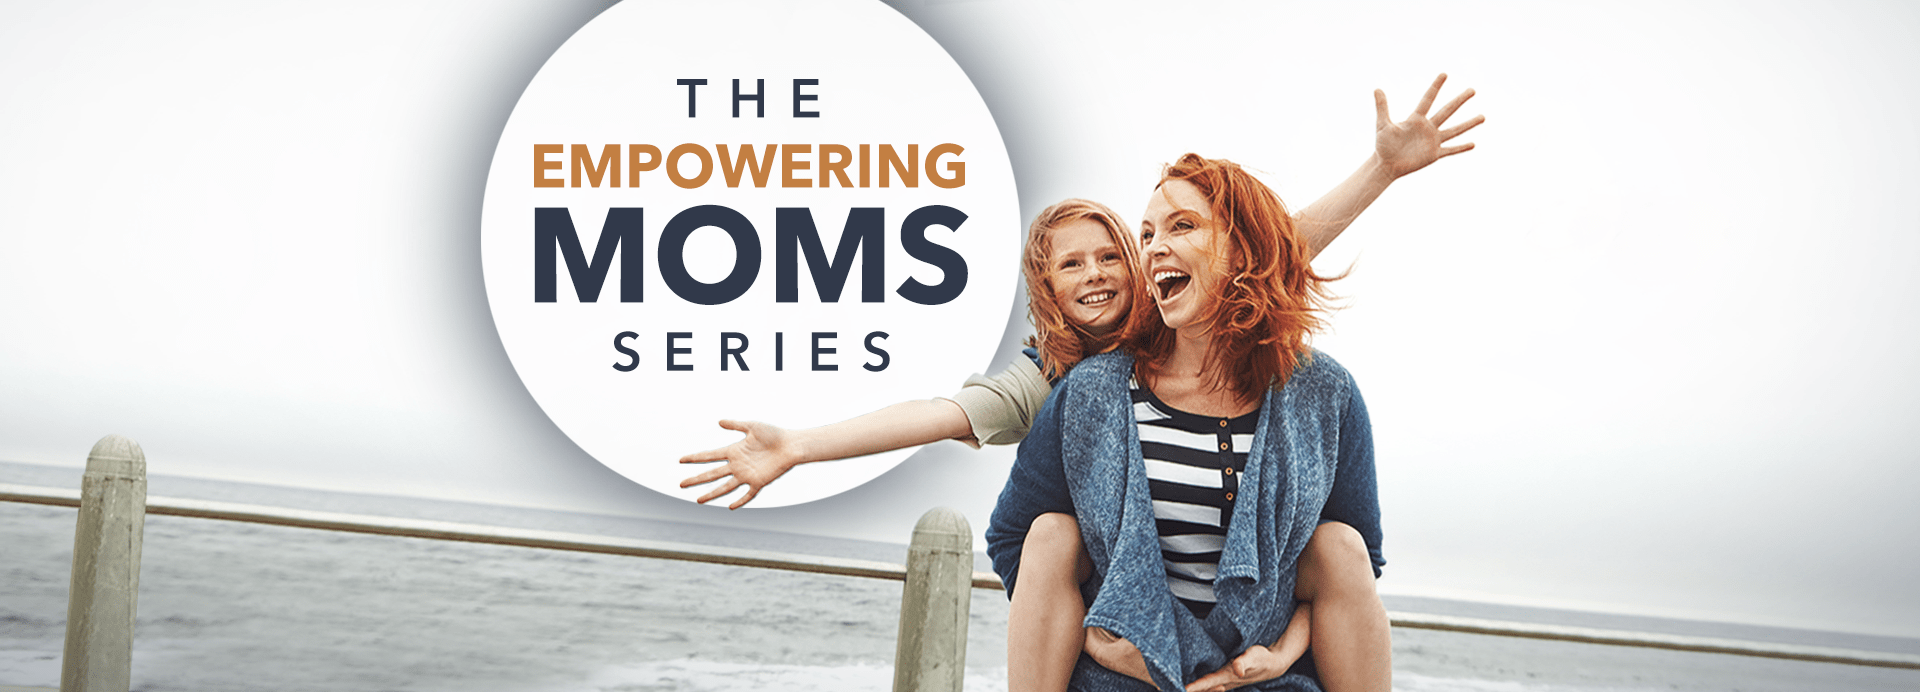 The Empowering Moms Series